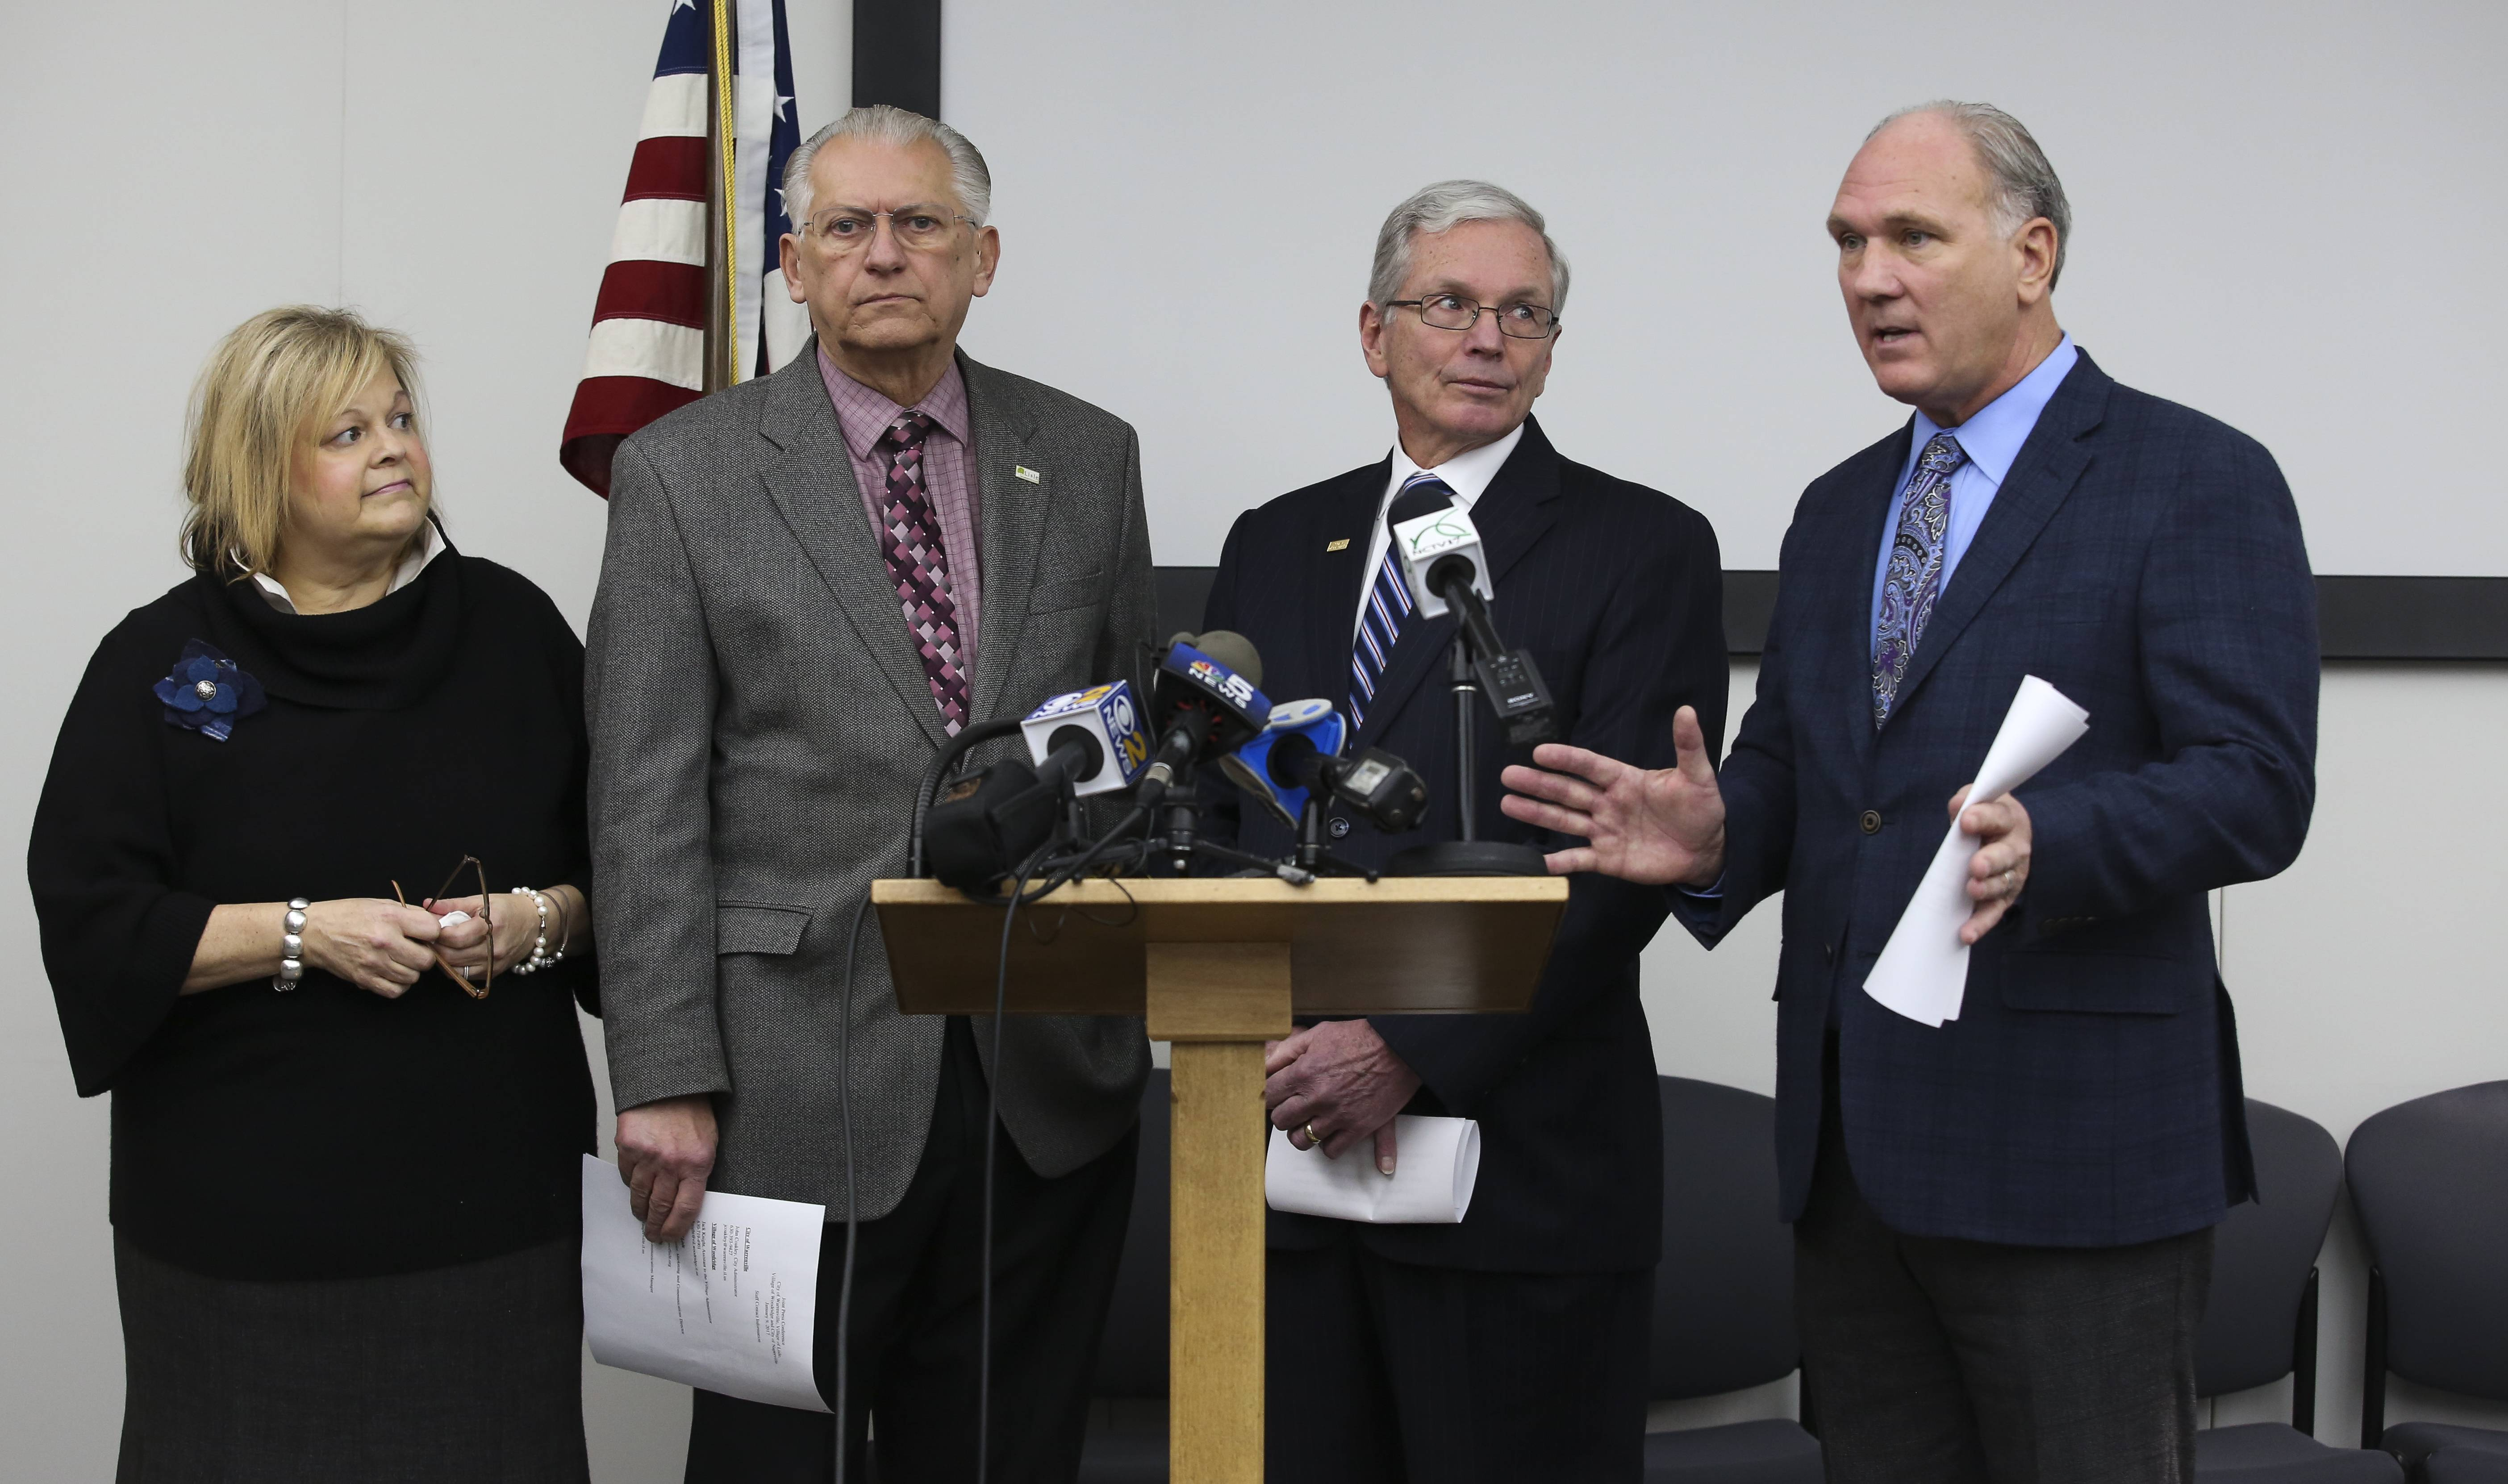 From left, Mayor Gina Cunningham-Picek of Woodridge, Mayor Joseph Broda of Lisle, Mayor David Brummel of Warrenville and Mayor Steve Chirico of Naperville address petitions purporting to seek a merger of their towns.